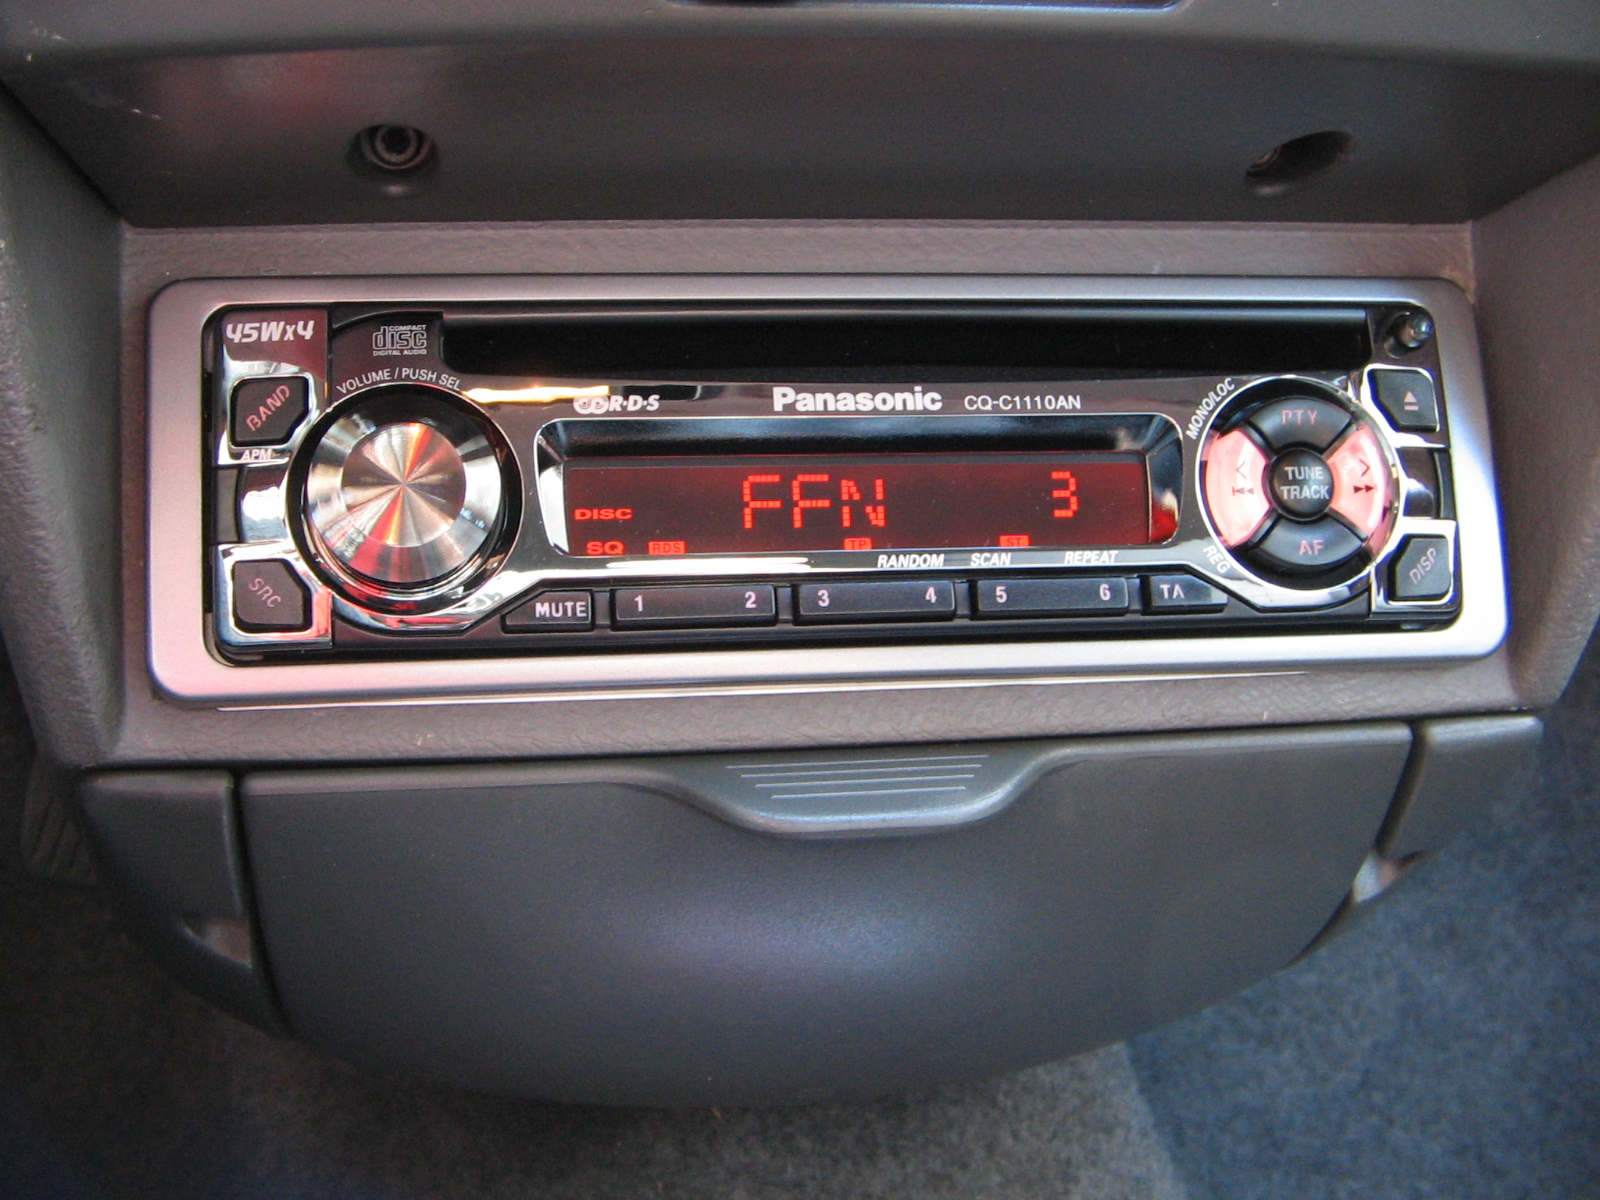 Download this Description Autoradio Panasonic picture